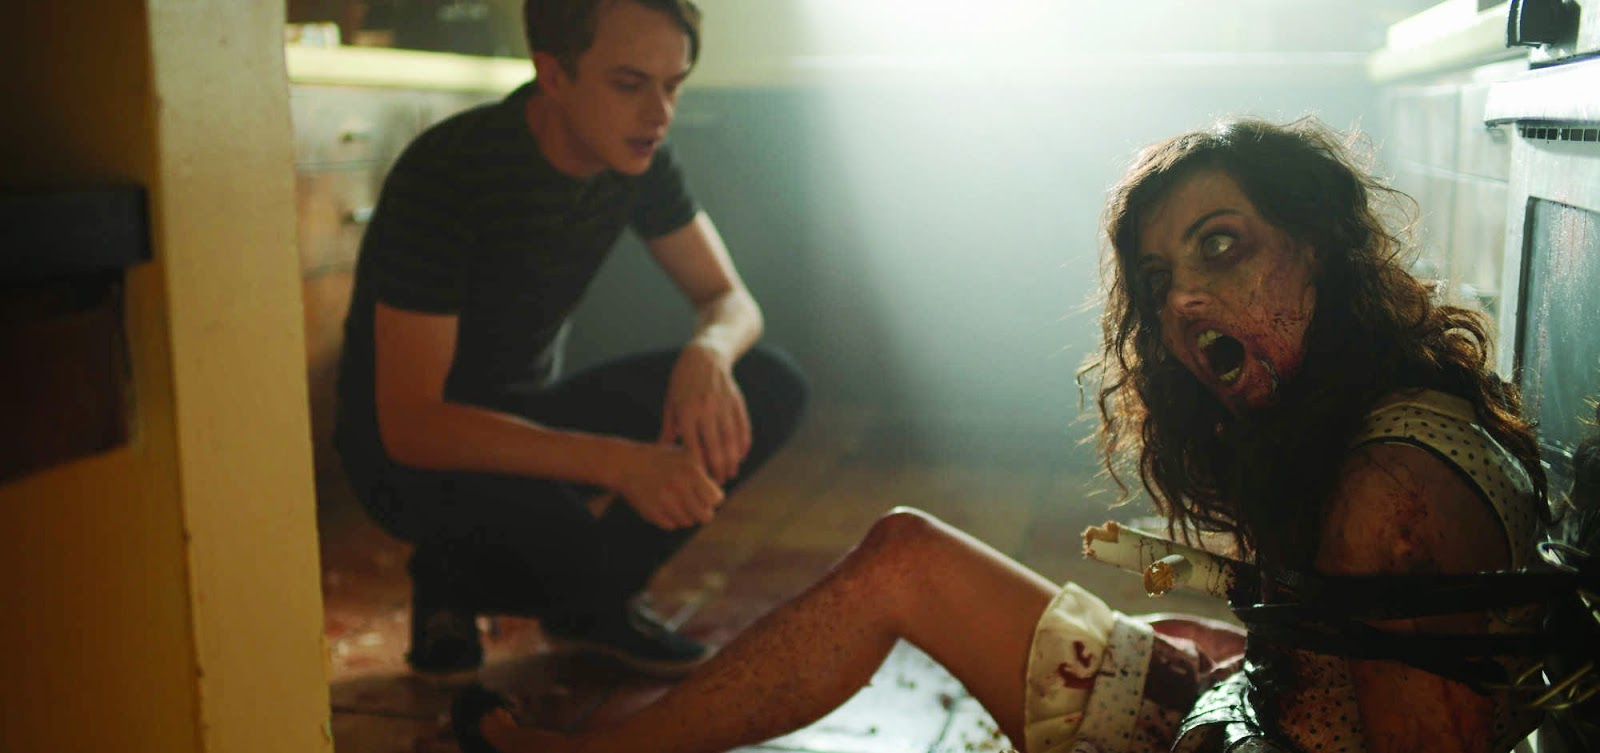 Dane DeHaan namora uma zumbi no trailer de Life After Beth, com Aubrey Plaza